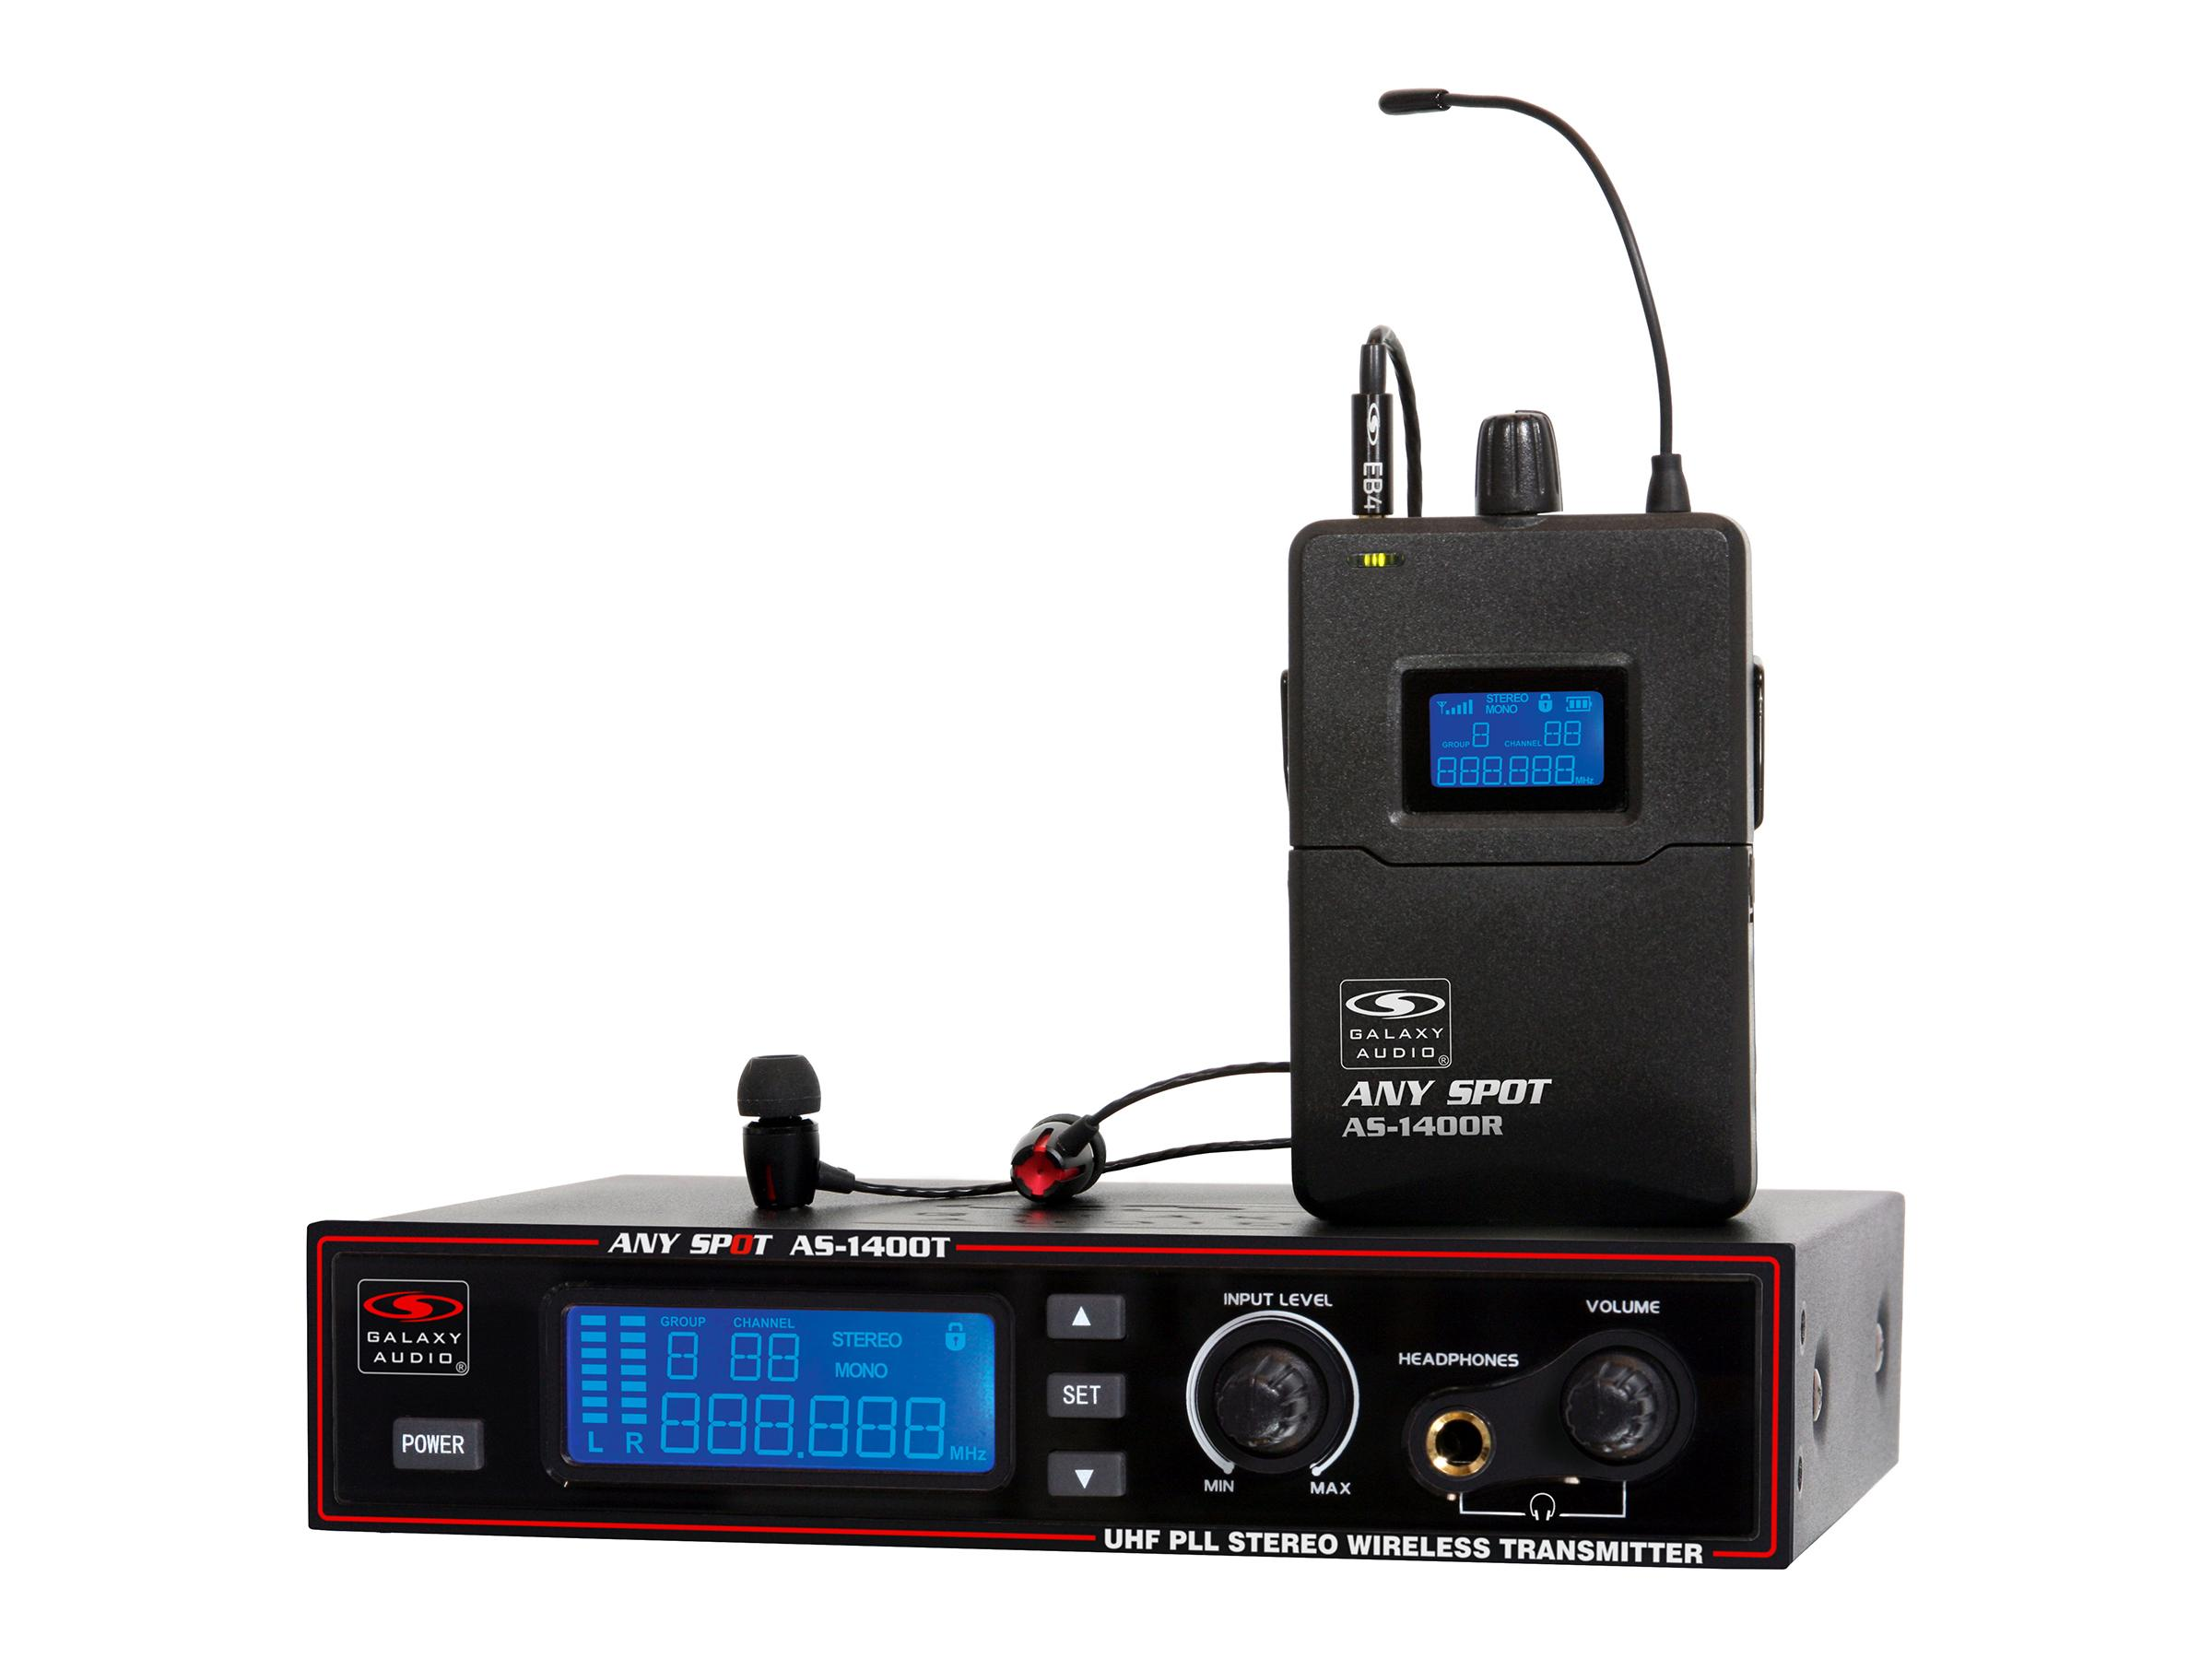 AS-1400 Wireless In-Ear Personal Monitor (Transmitter/Receiver) Kit/40Hz-16kHz by Galaxy Audio